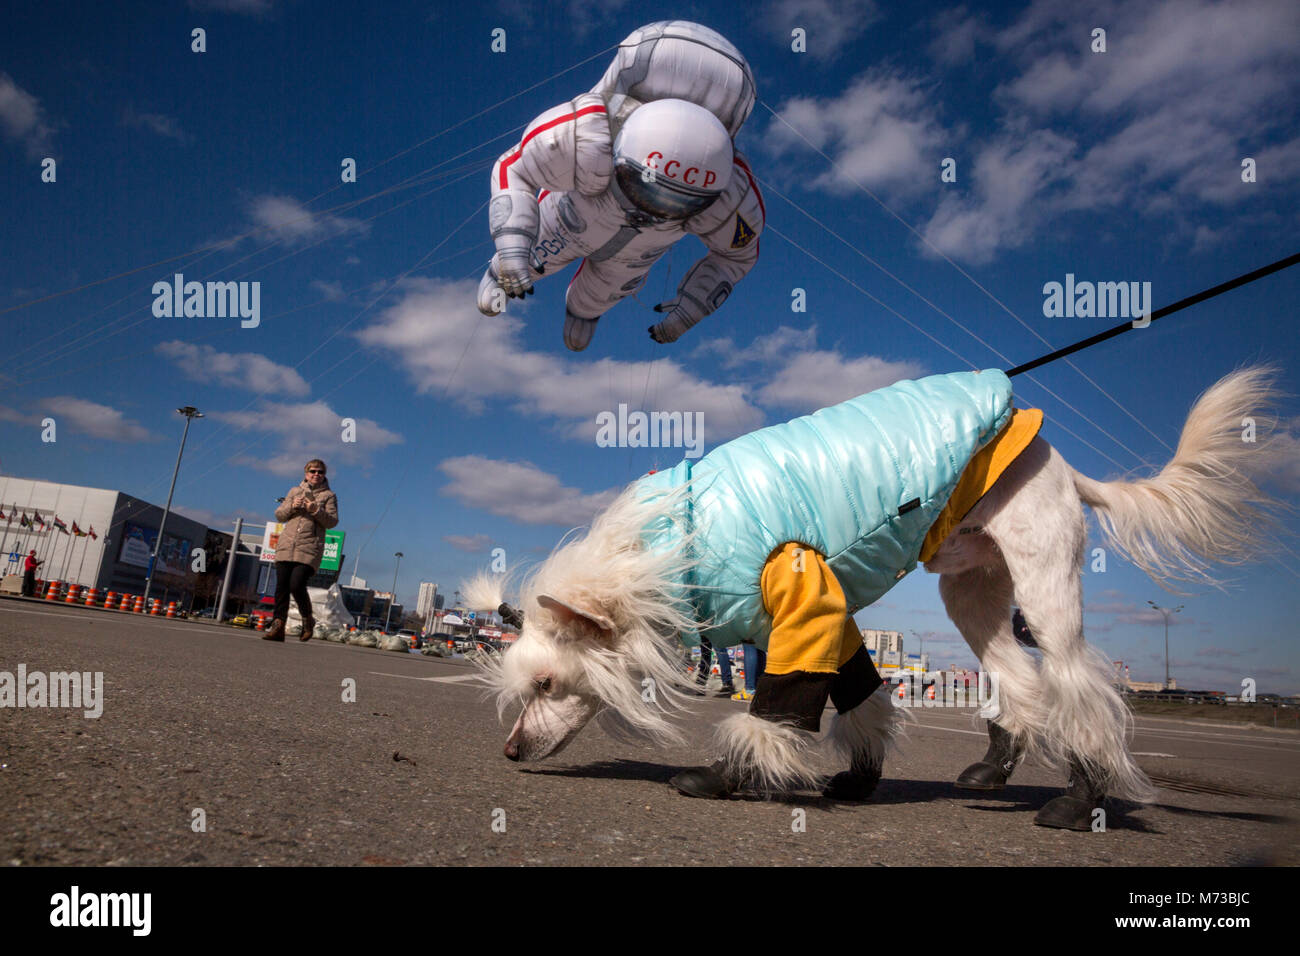 A balloon in the form of a Soviet cosmonaut flies over in Moscow city, Russia - Stock Image